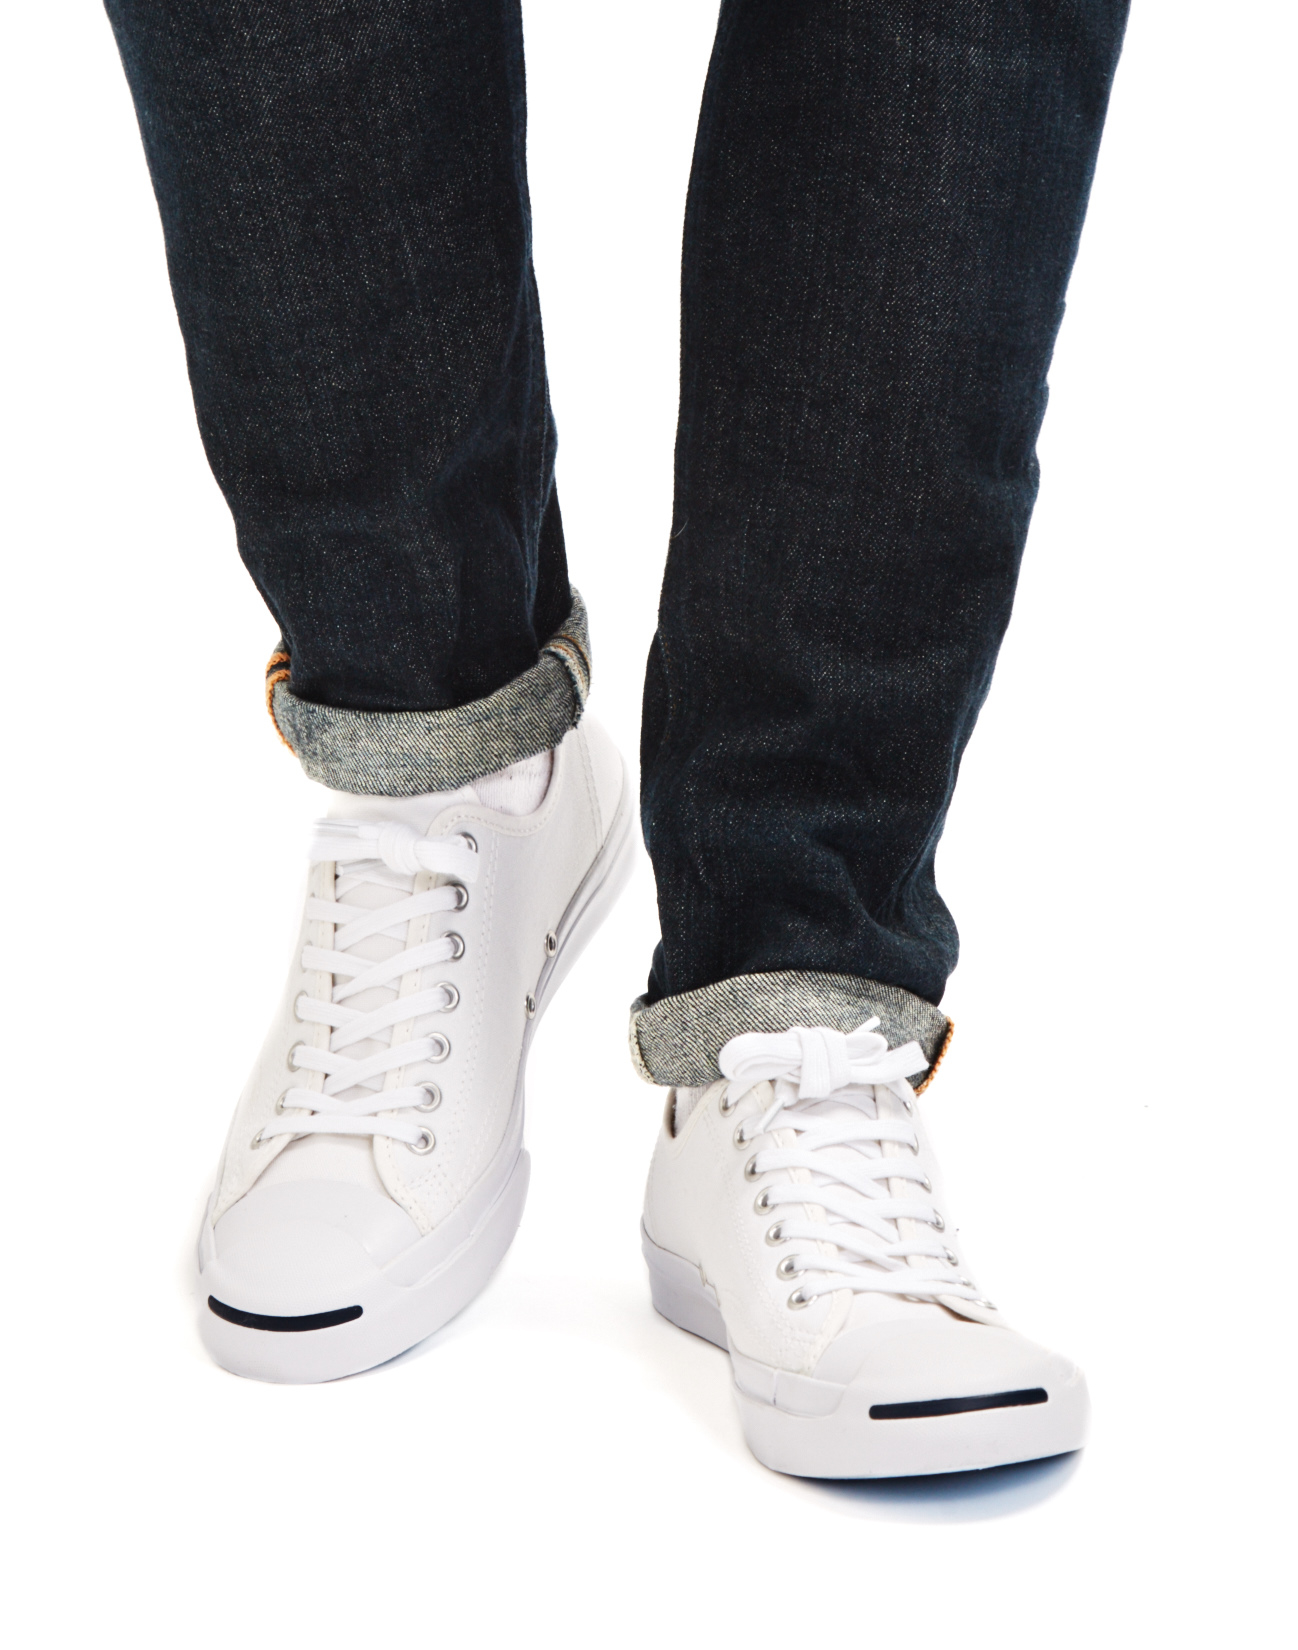 6d2e9f1e2b2 Lyst - Converse Jack Purcell Jack Leather Trainer White navy in ...